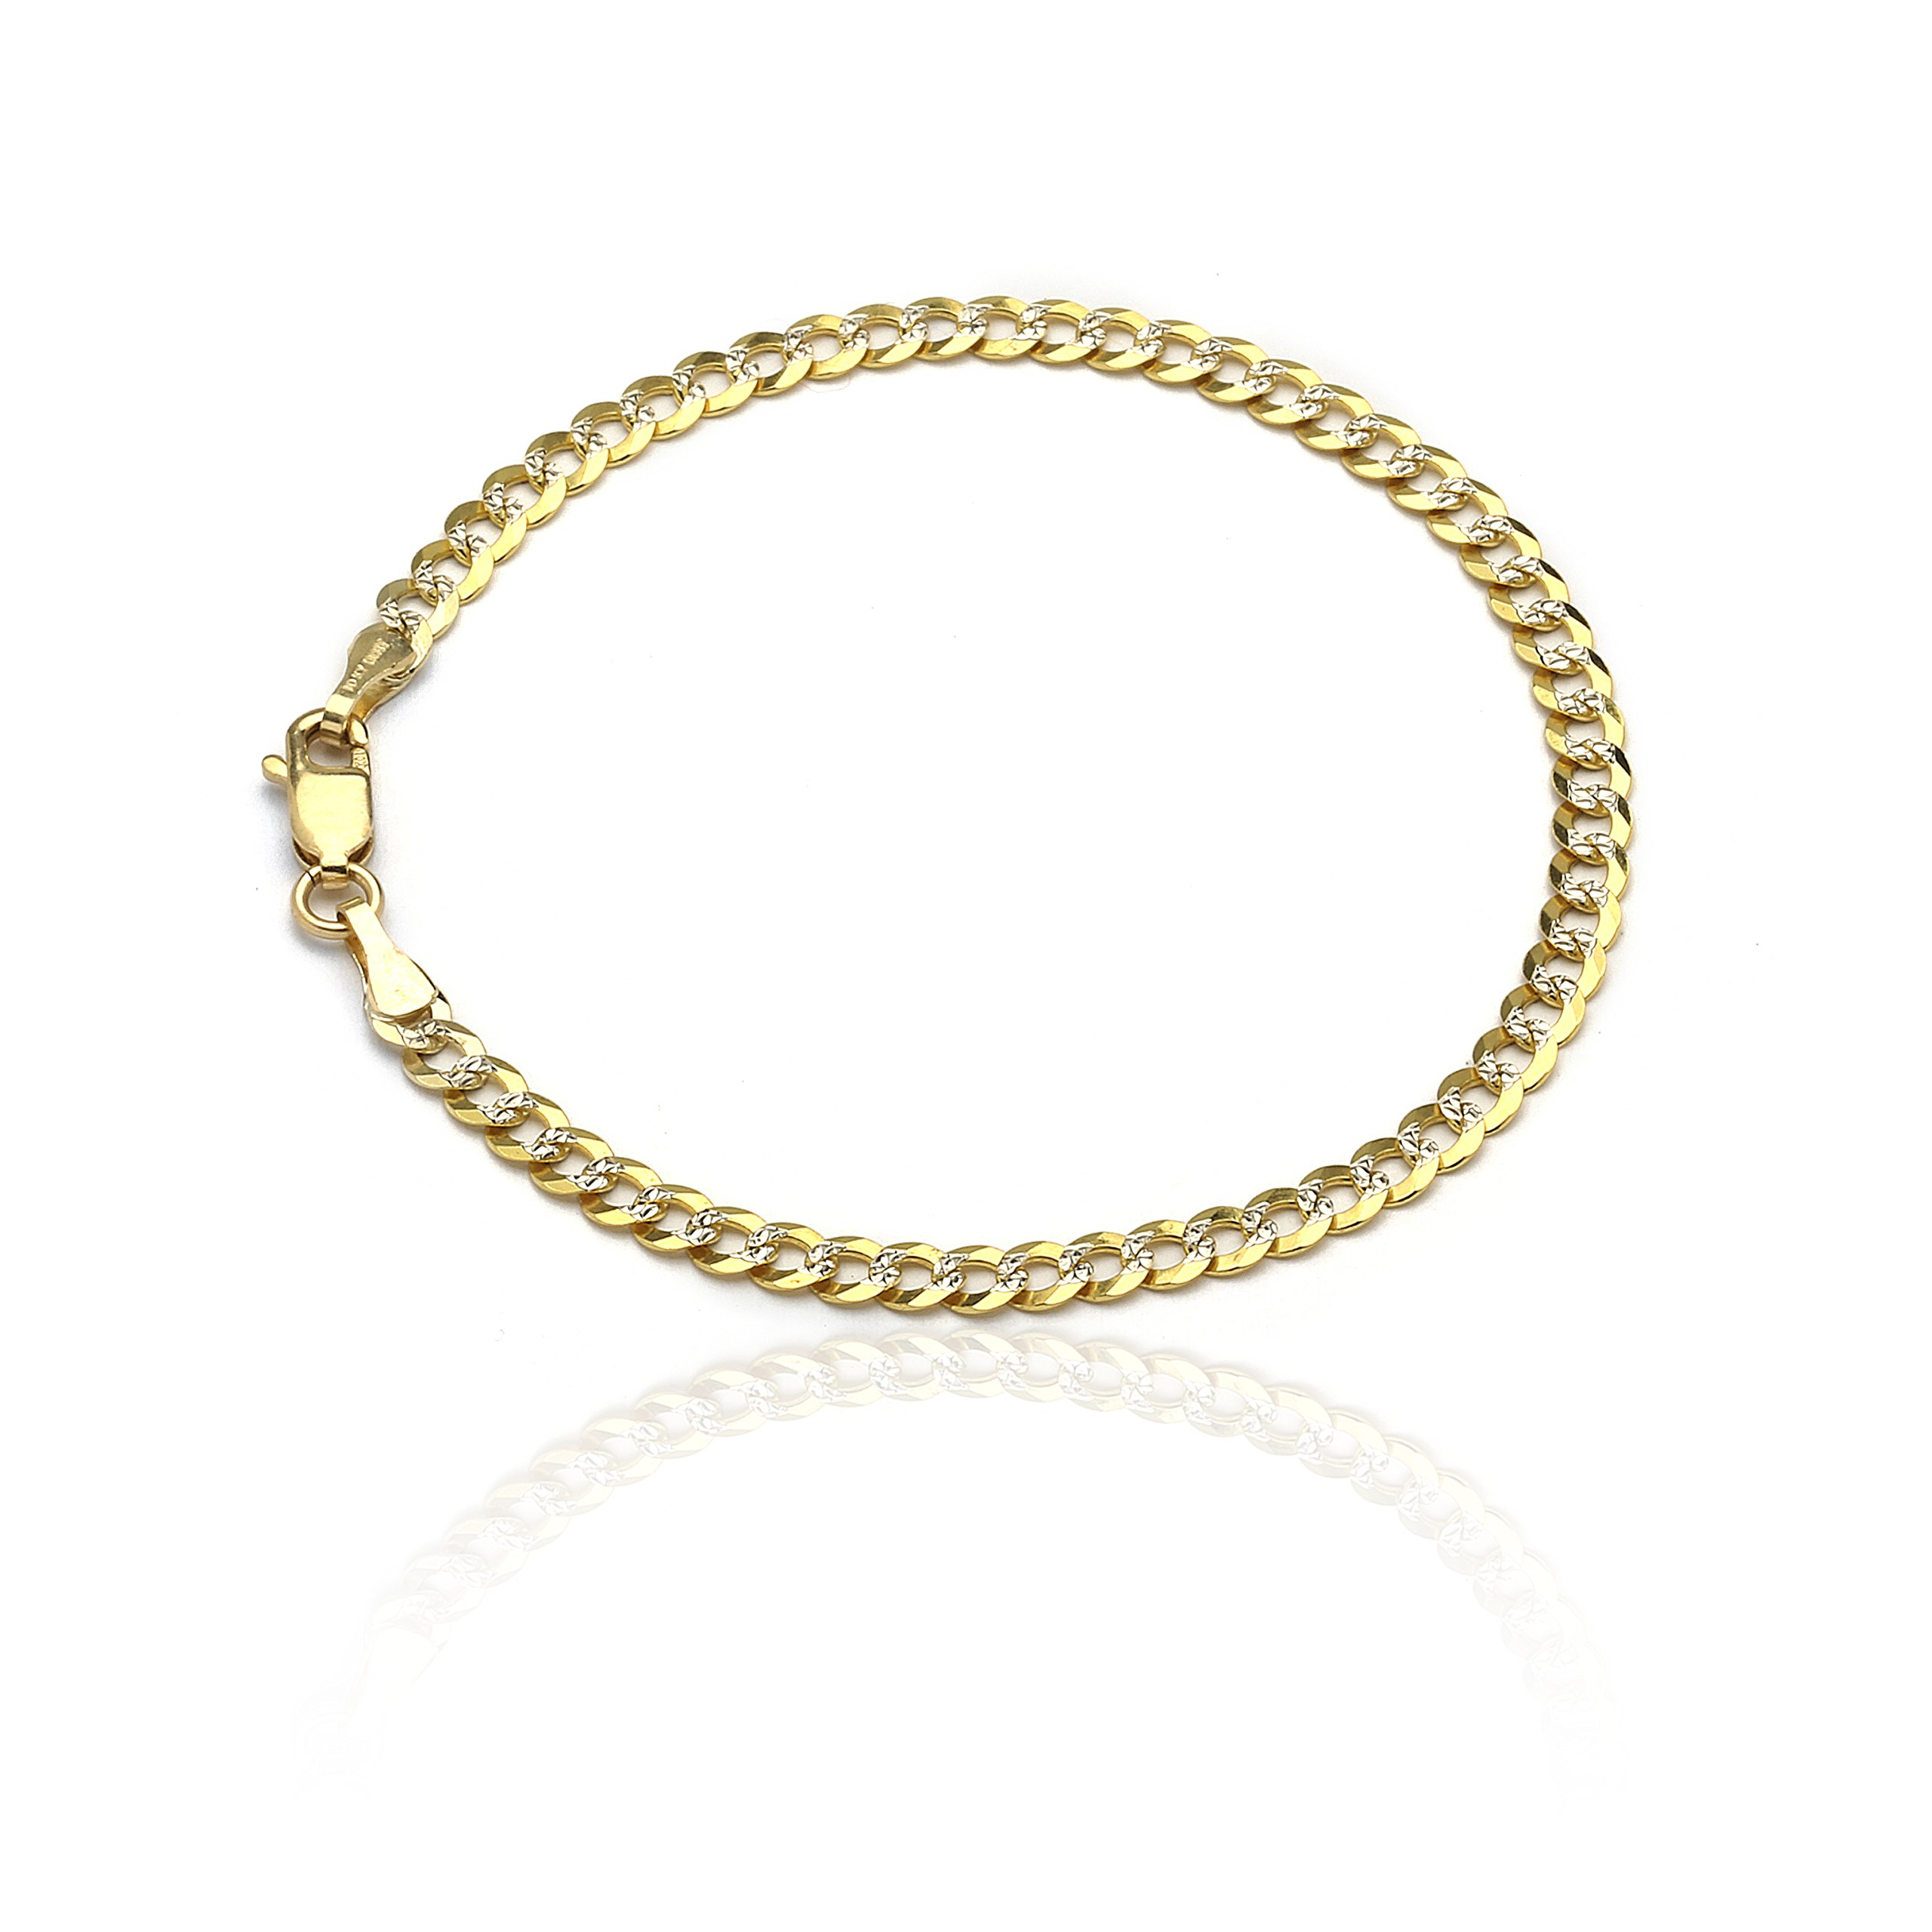 10 Inch 10k Two-Tone Gold Curb Cuban Chain Ankle Bracelet Anklet with White Pave, 0.16 Inch (4mm)